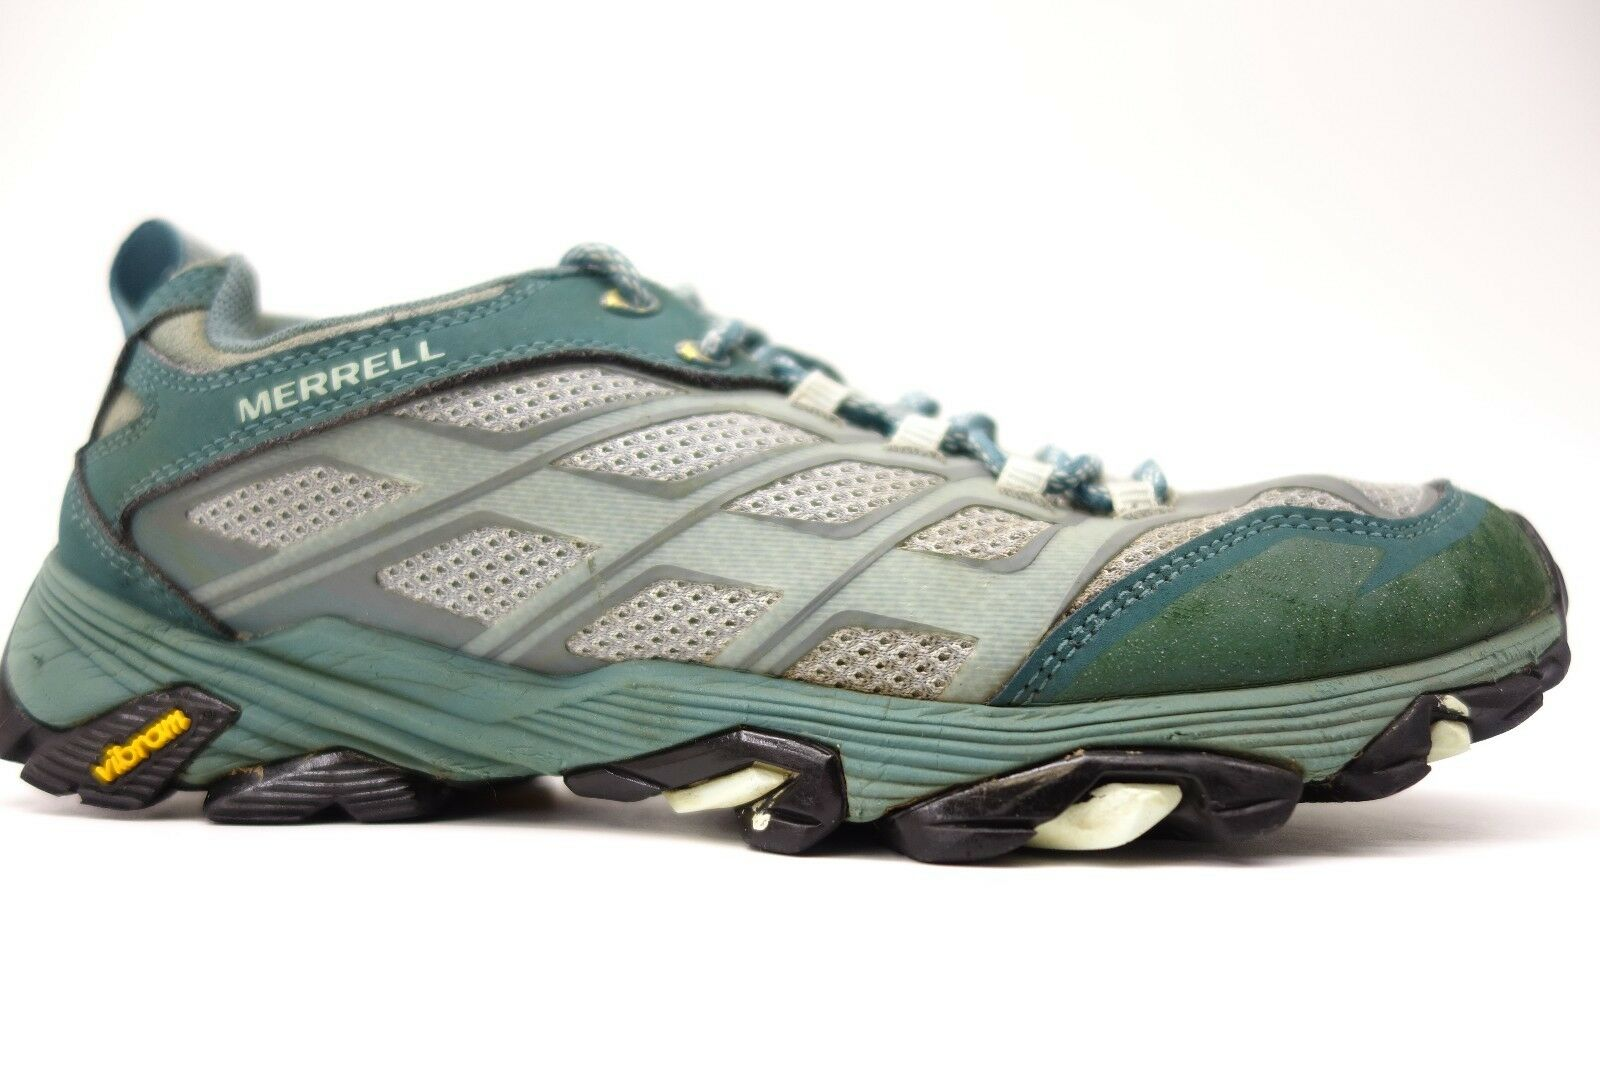 Merrell Womens Moab FST Mid Waterproof Hiking Athletic Active shoes Size 9